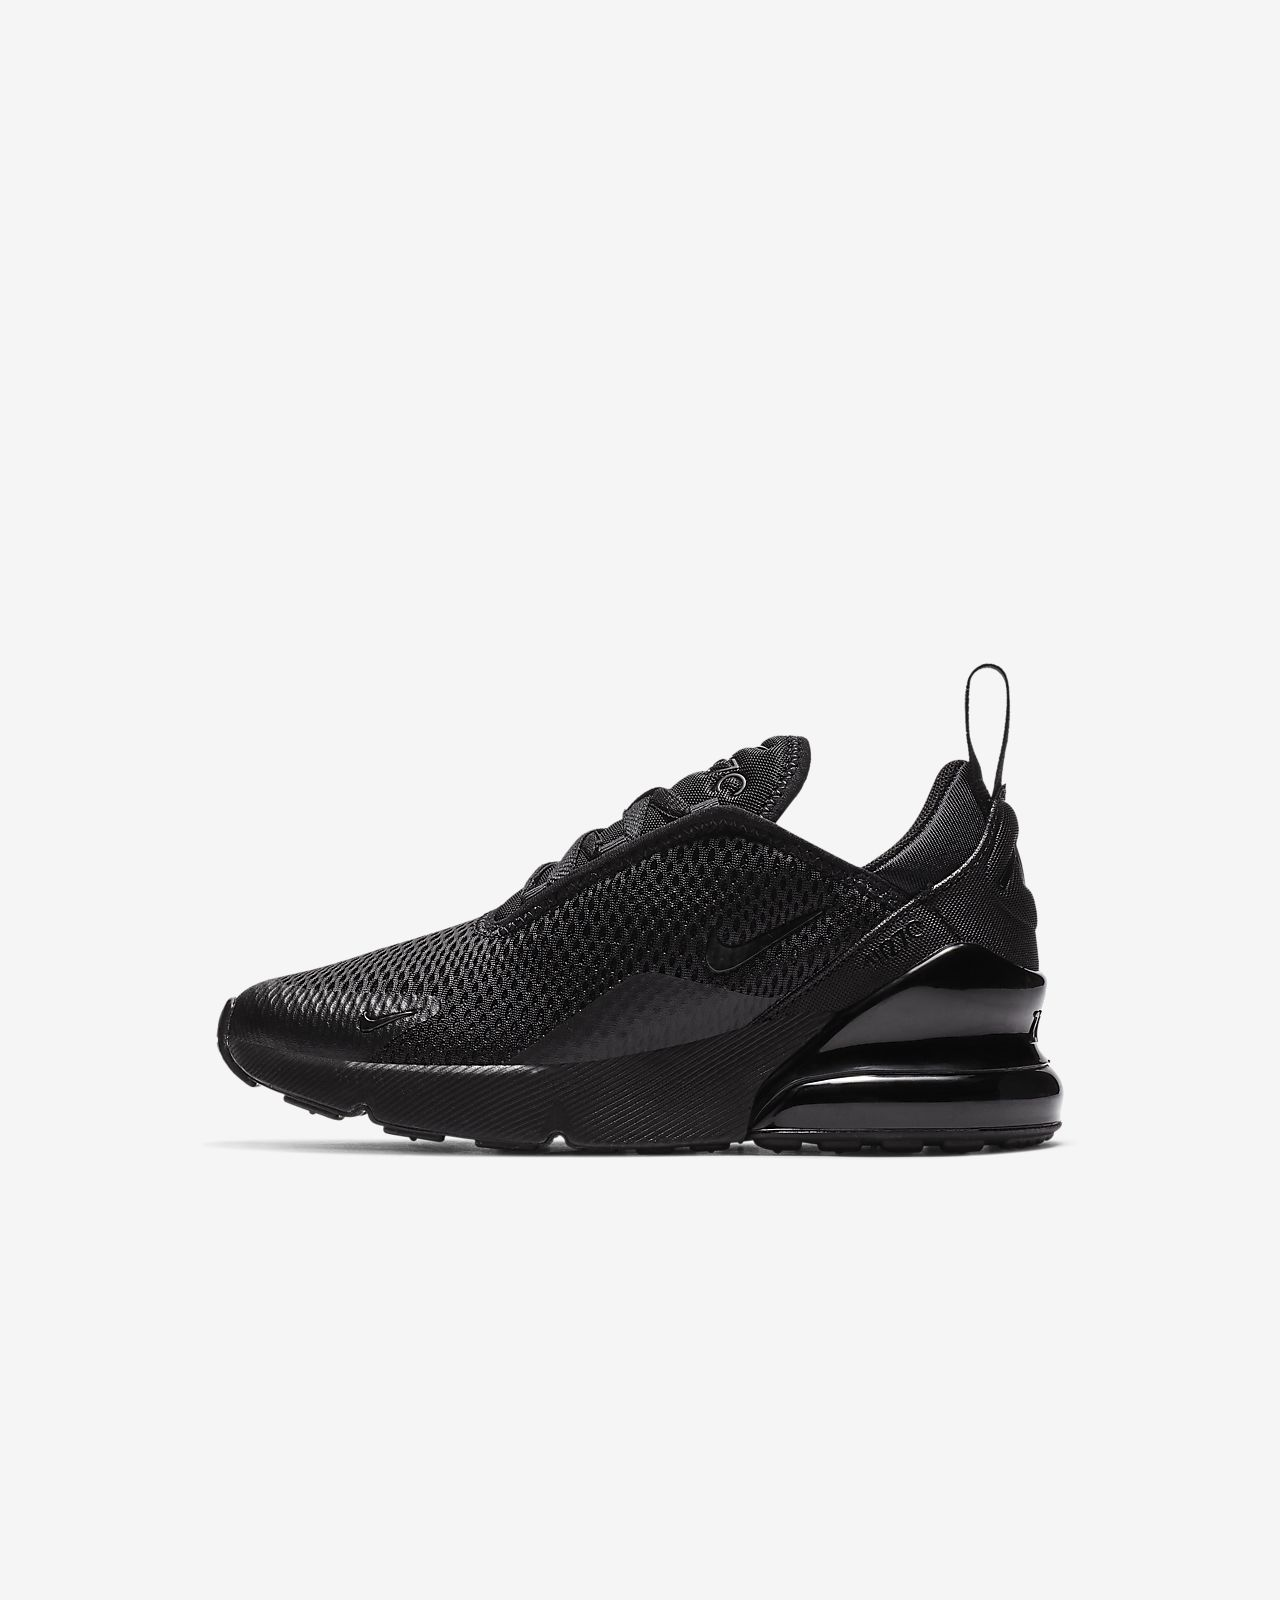 huge discount 54e83 edb8a Sko Nike Air Max 270 för barn